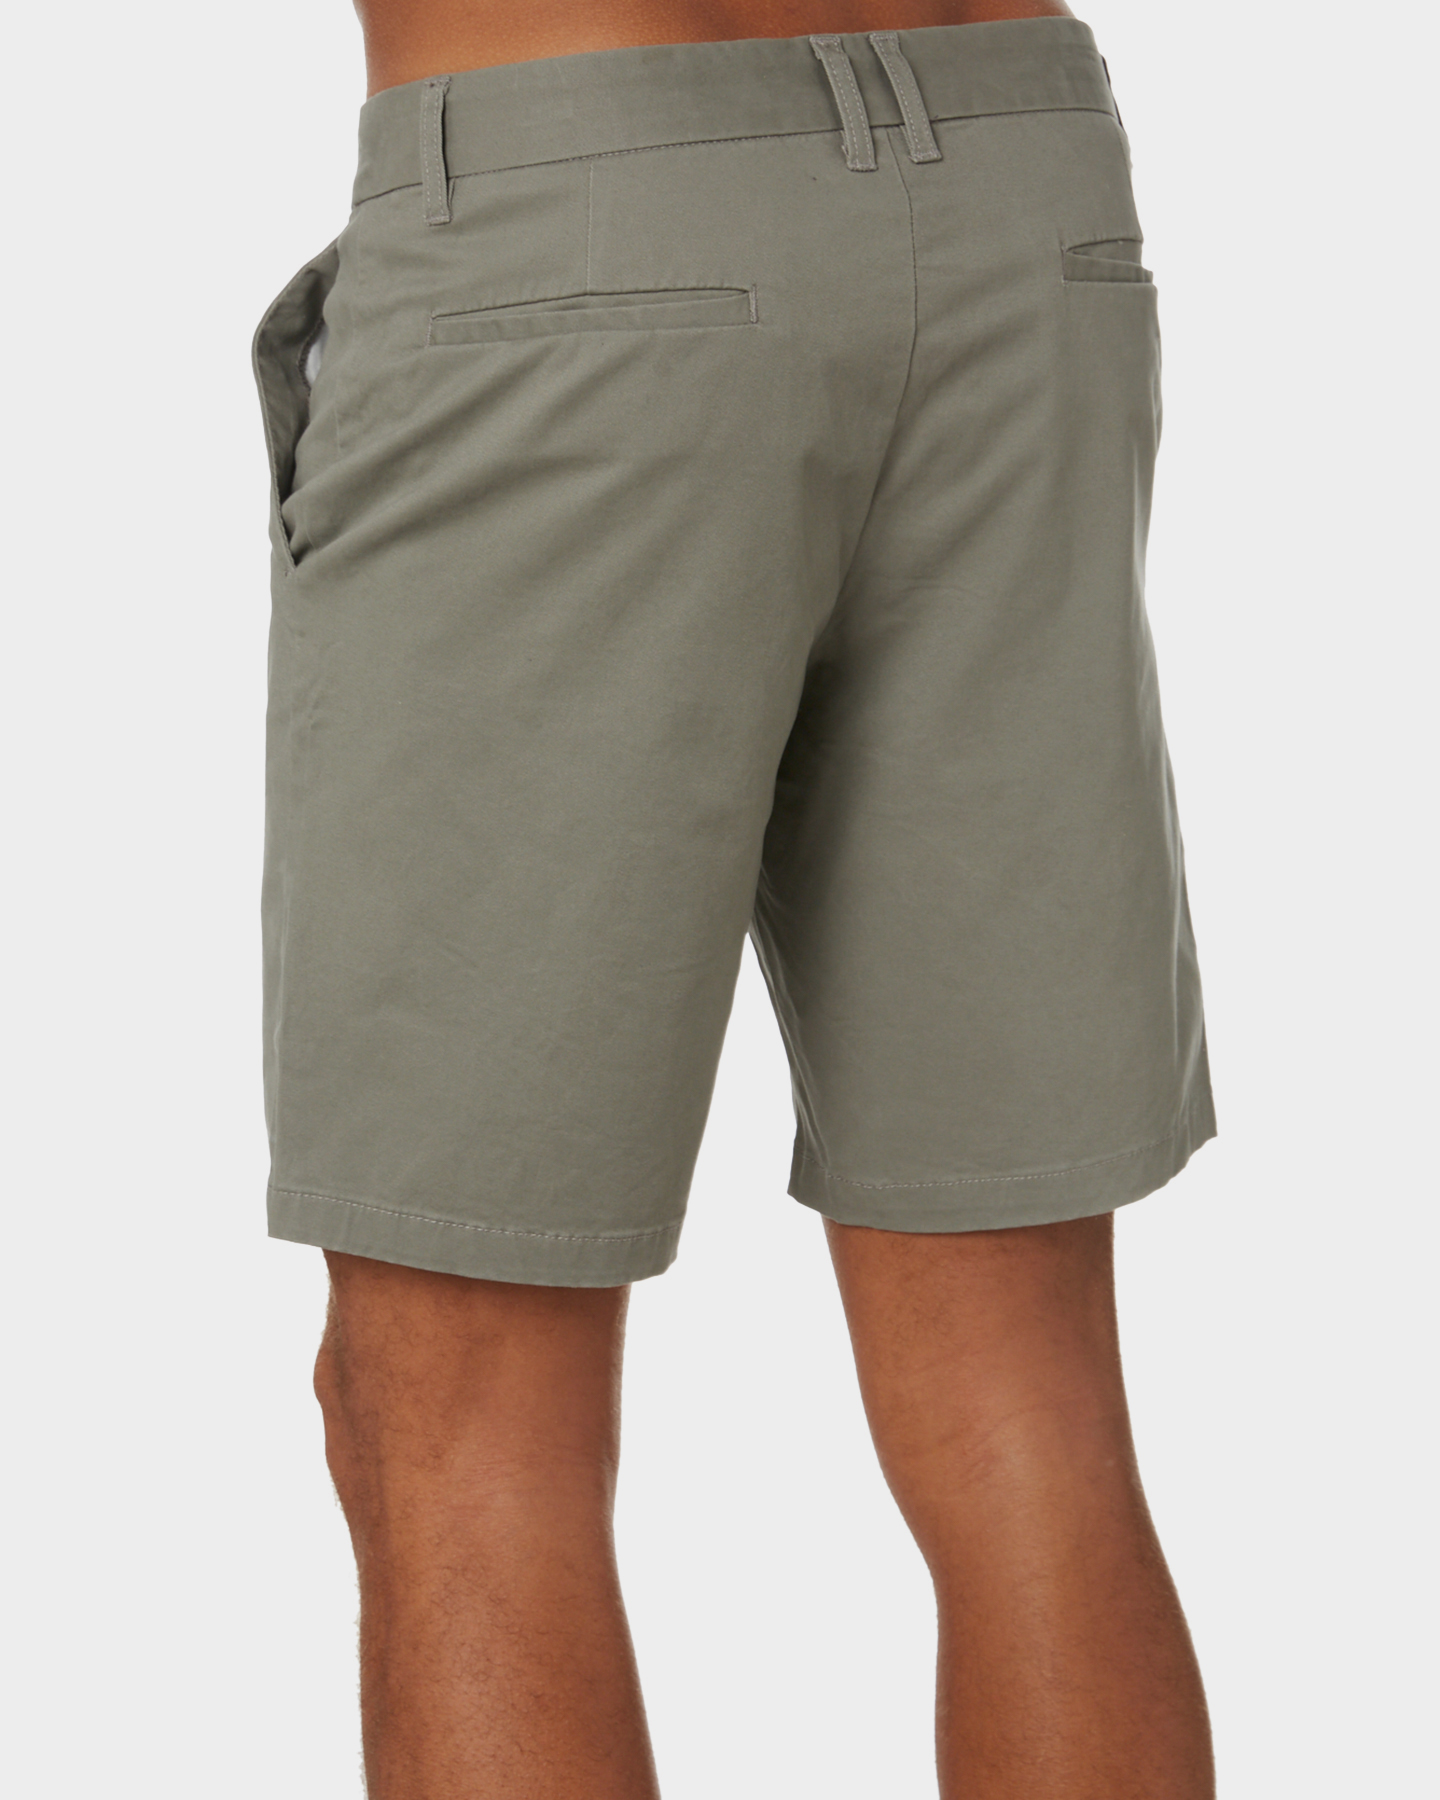 New-Swell-Men-039-s-Dandy-Mens-Chino-Short-Cotton-Fitted-Elastane-Blue thumbnail 18